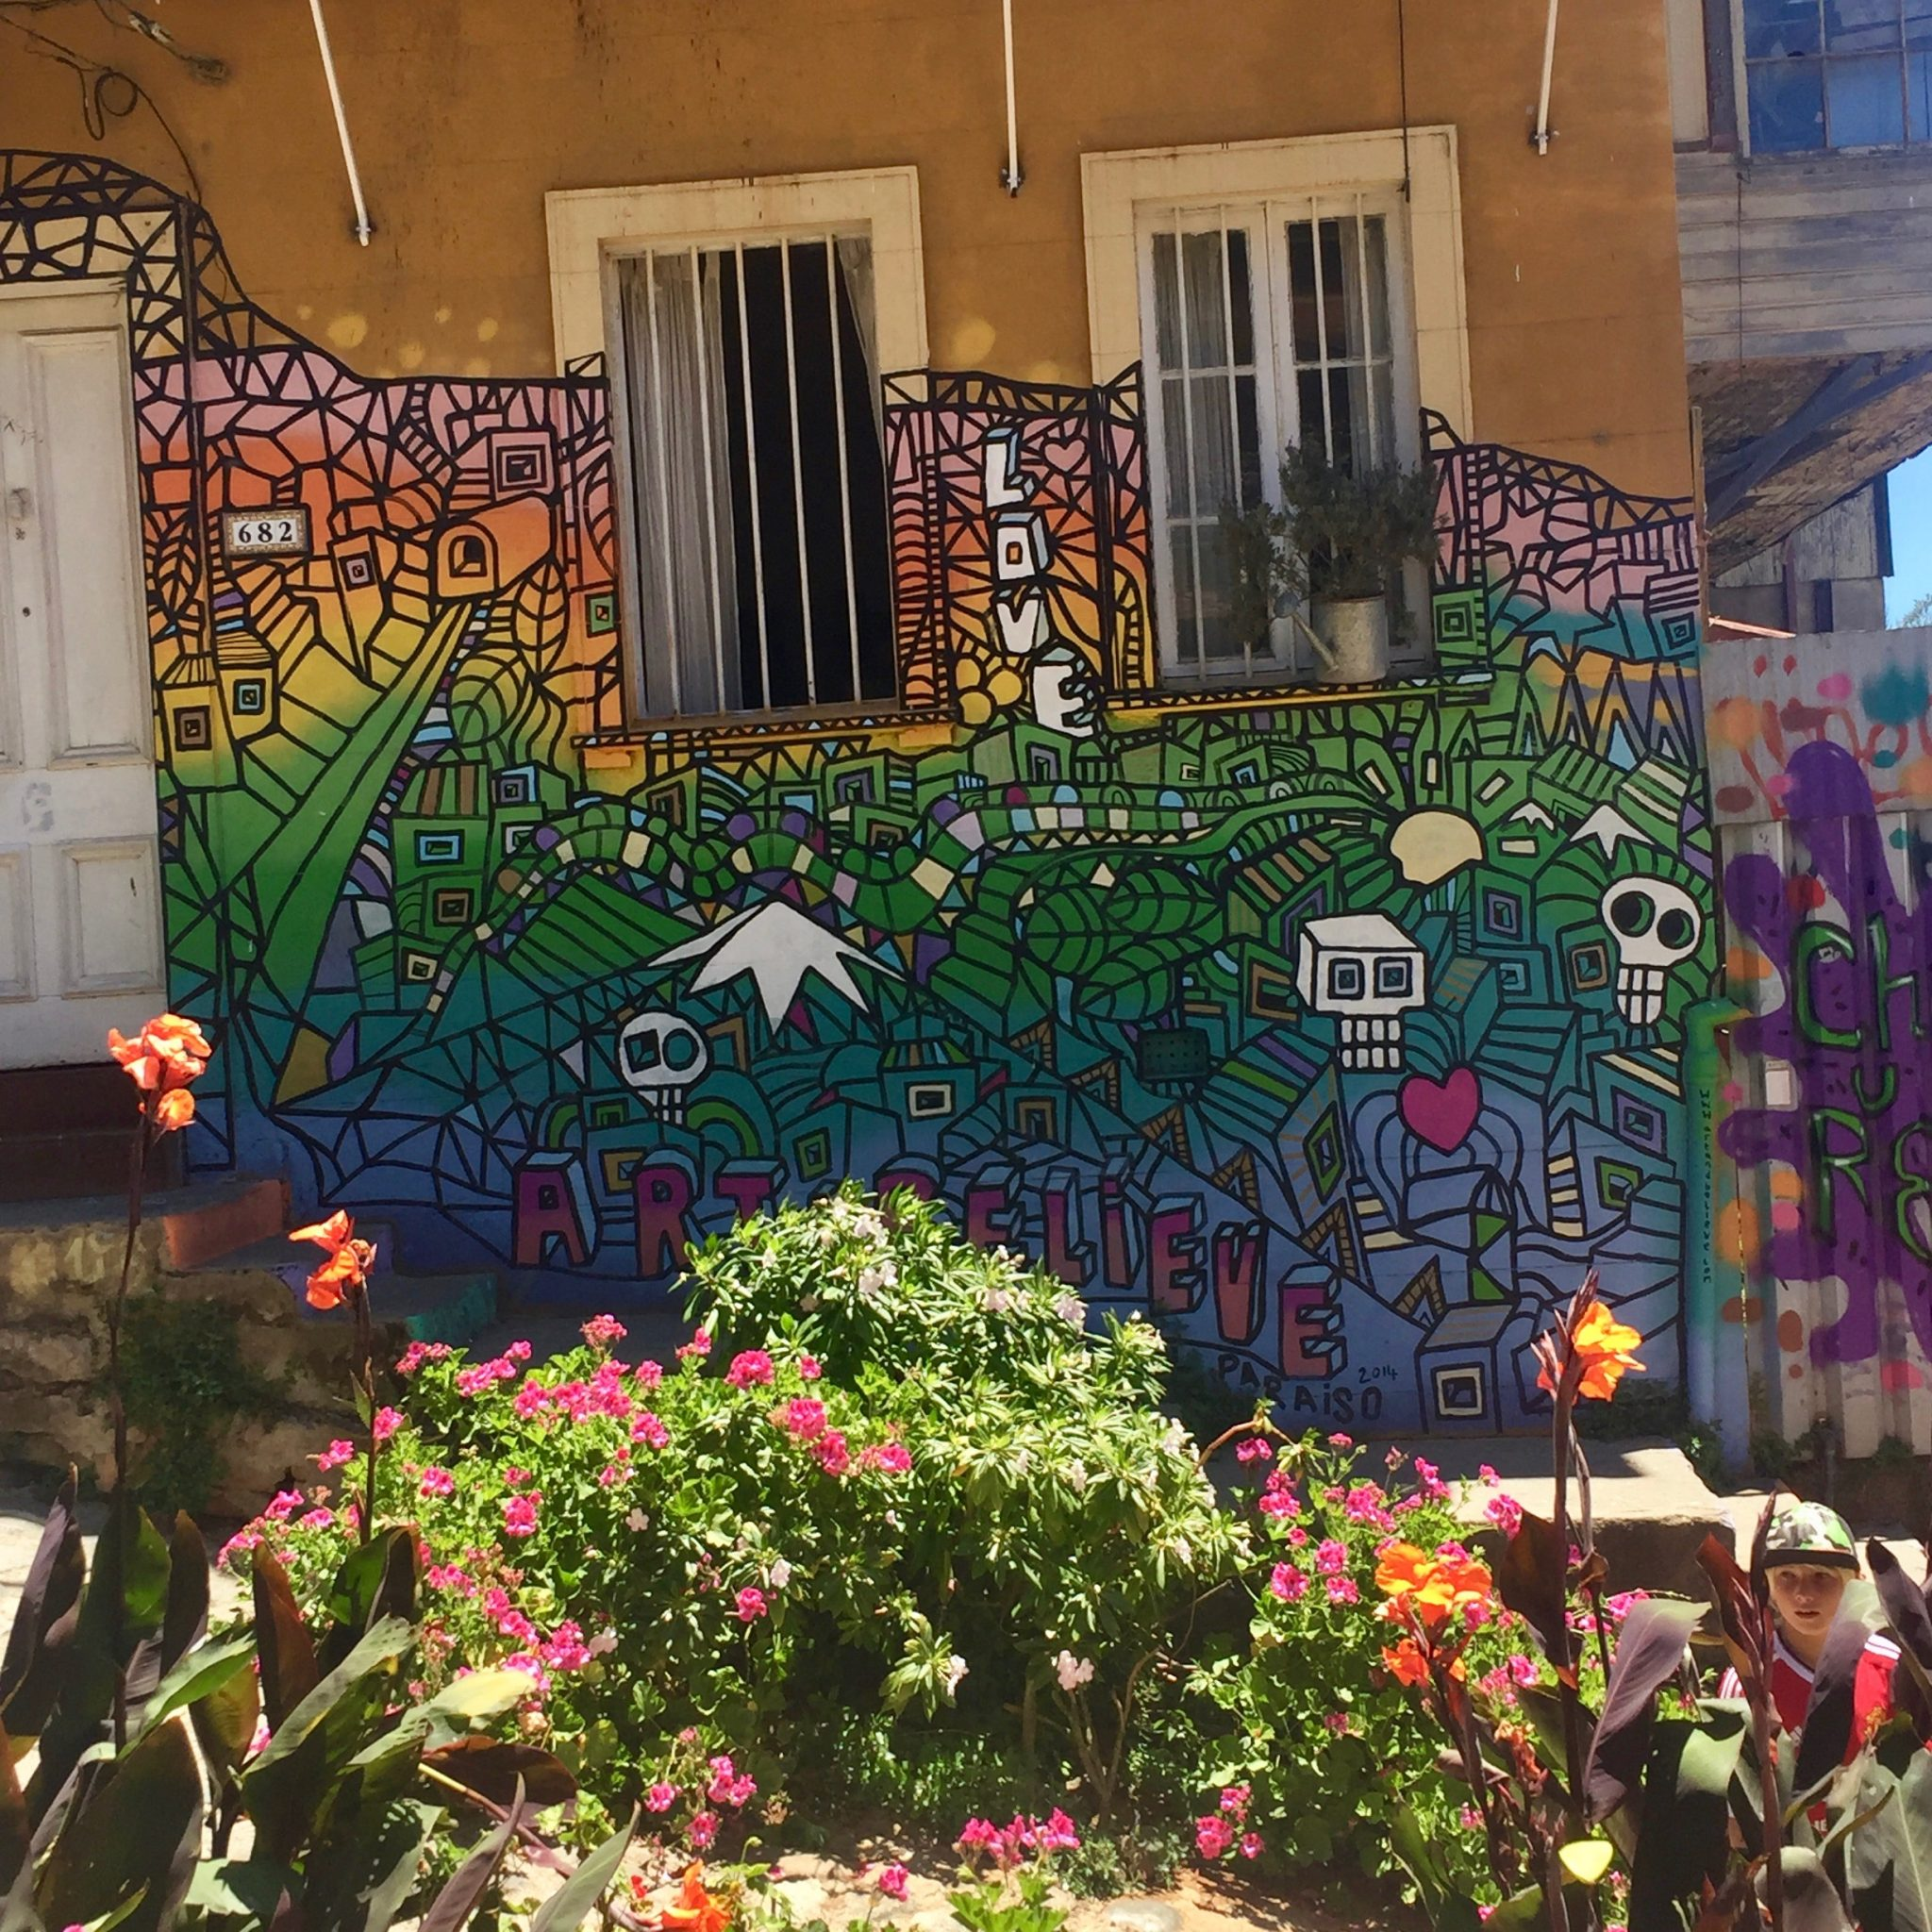 Where to Find Street Art in Valparaiso: